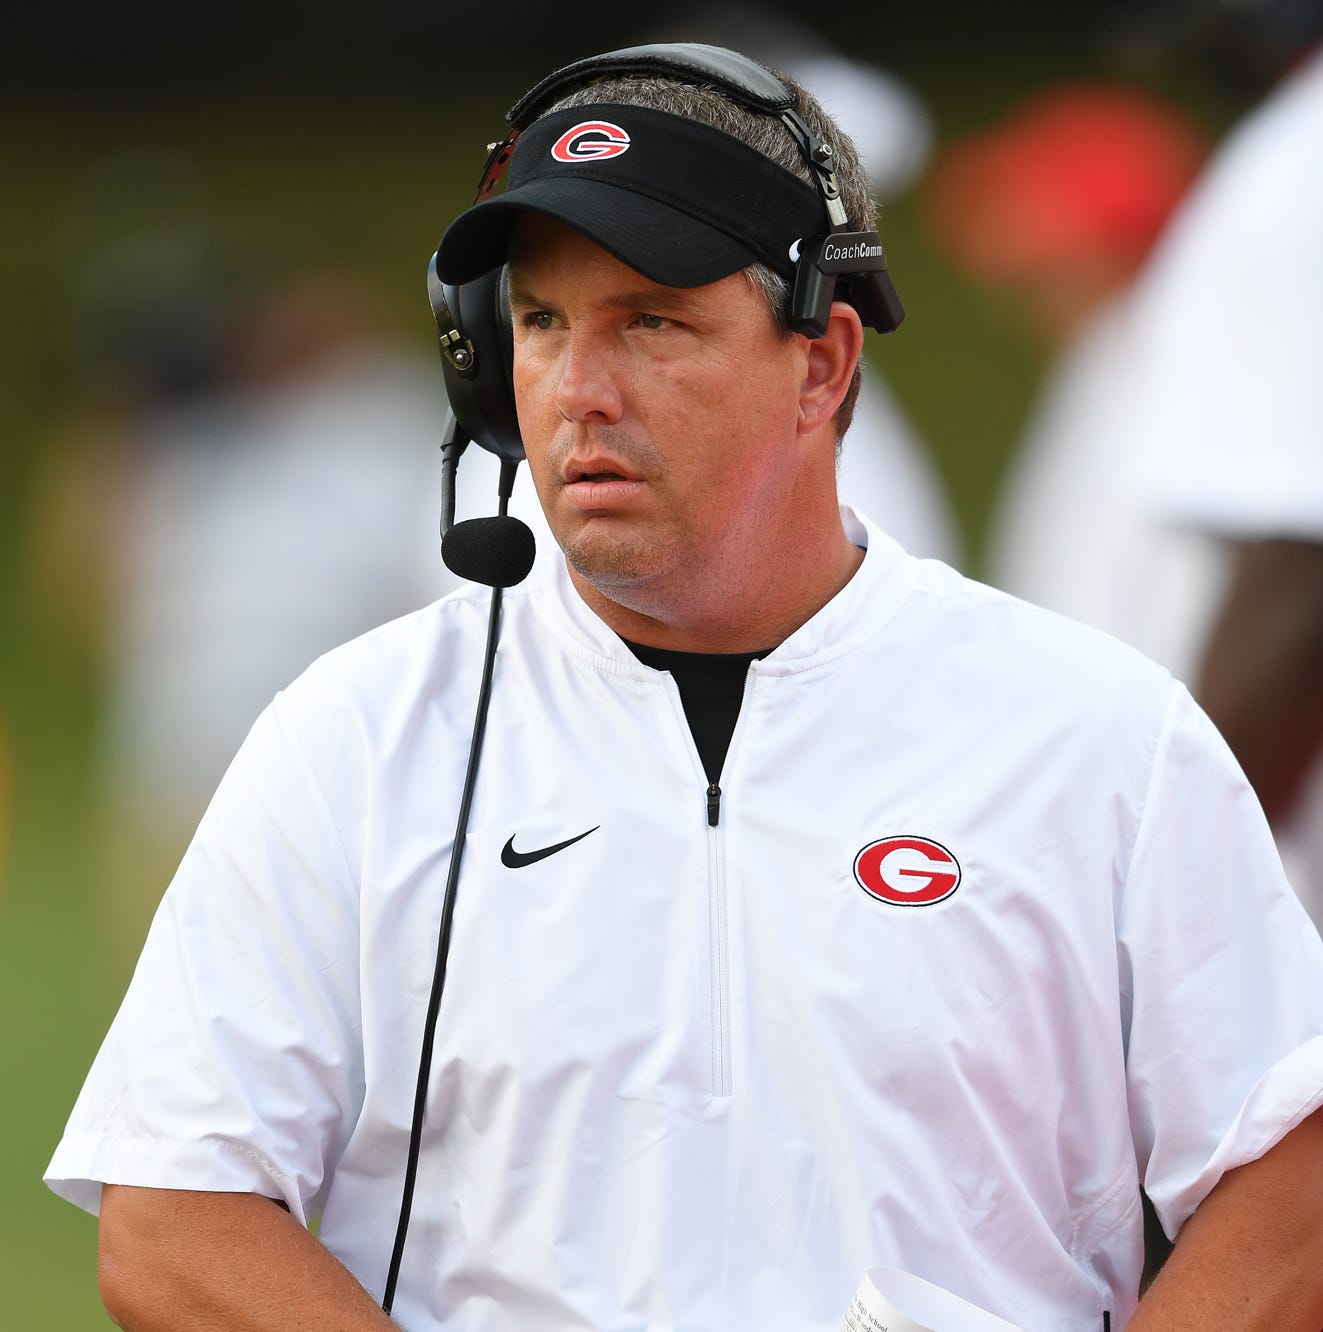 Greenville High athletic director hopes to name new head football coach by mid-February